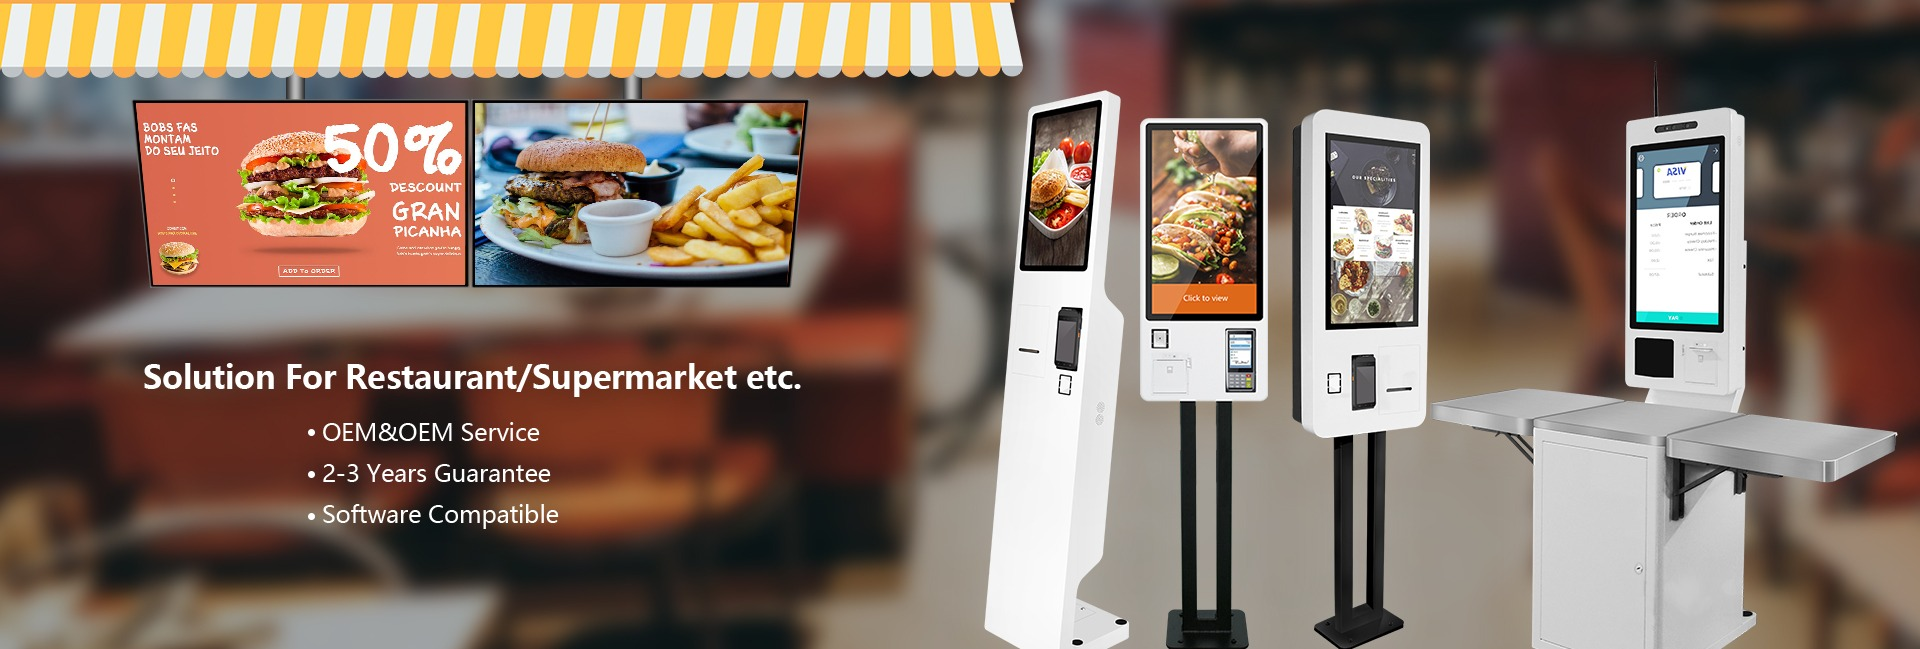 best epos systems Digital Screens and self order kiosk